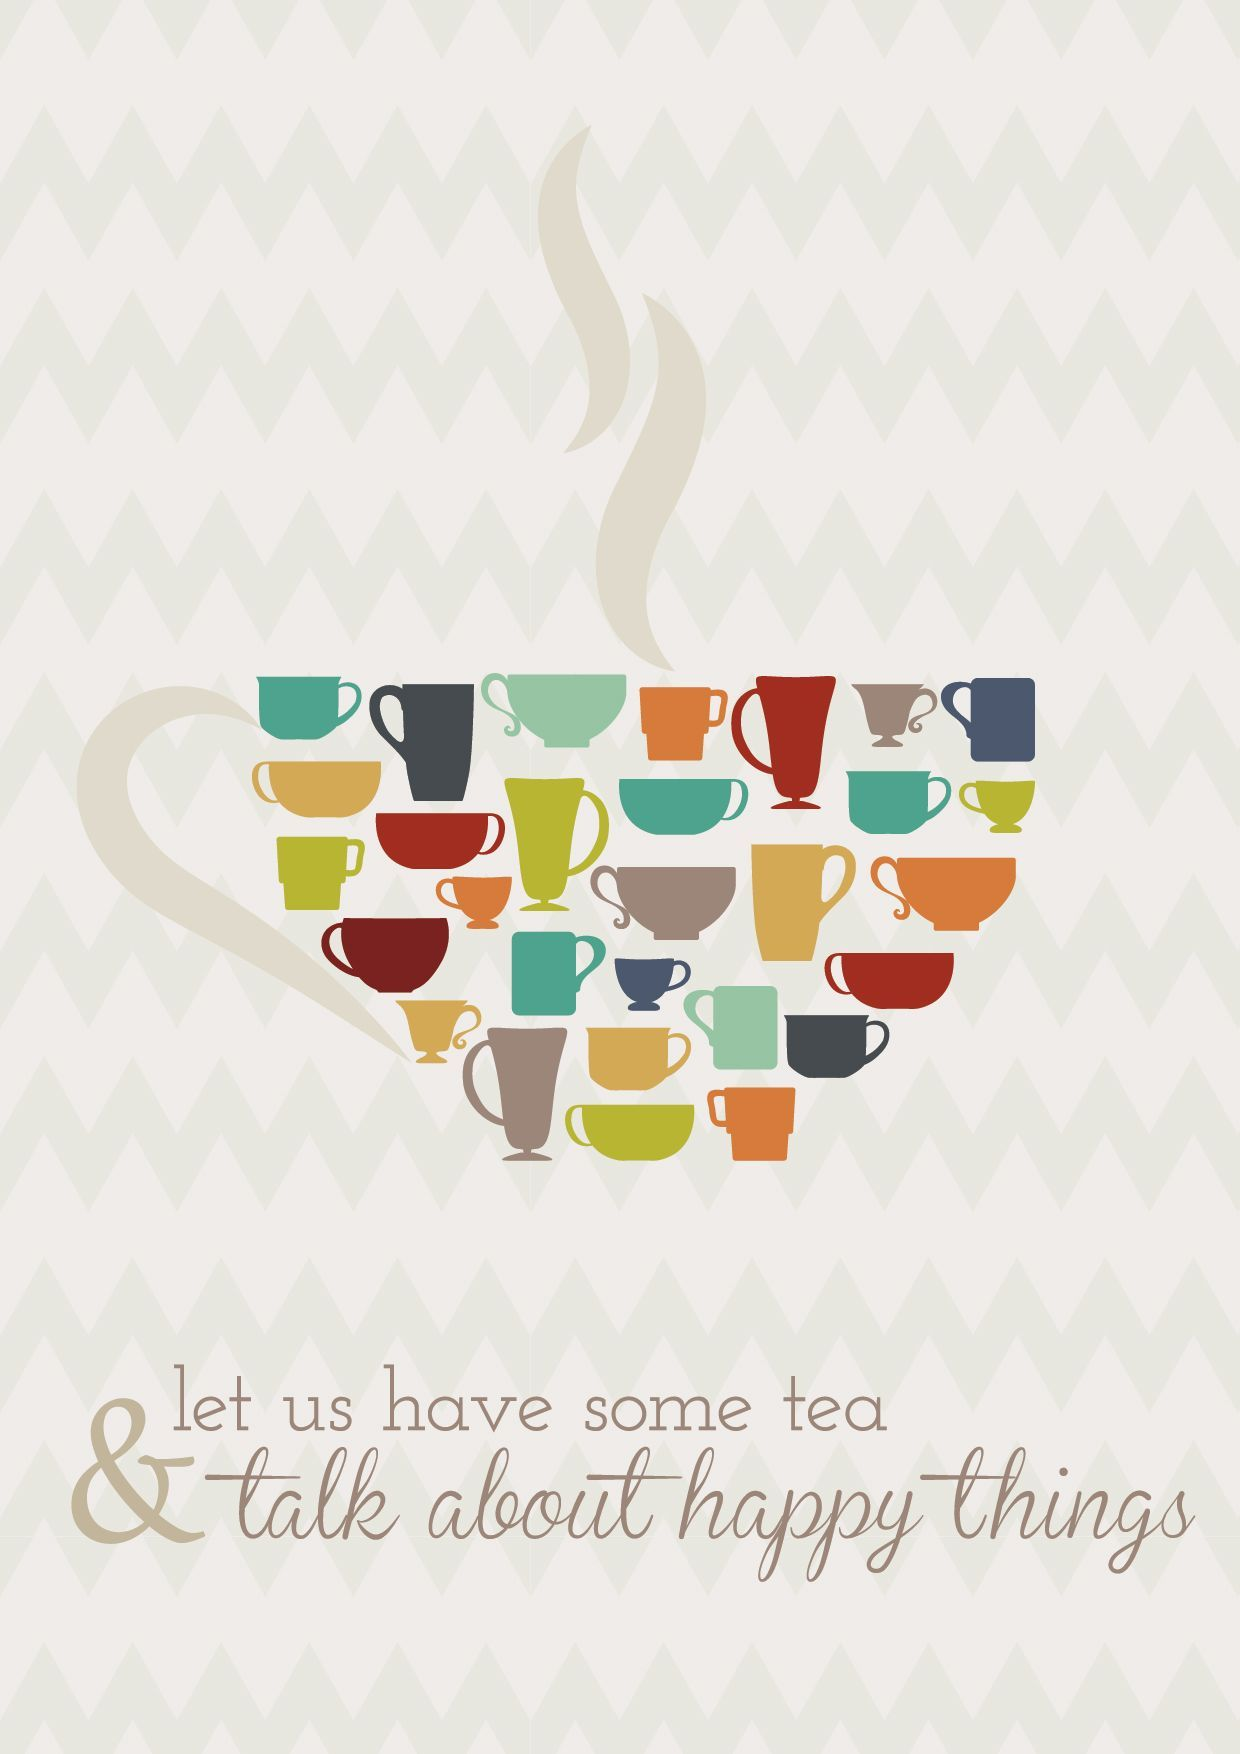 Let us have some tea & talk about happy things #cuppatea